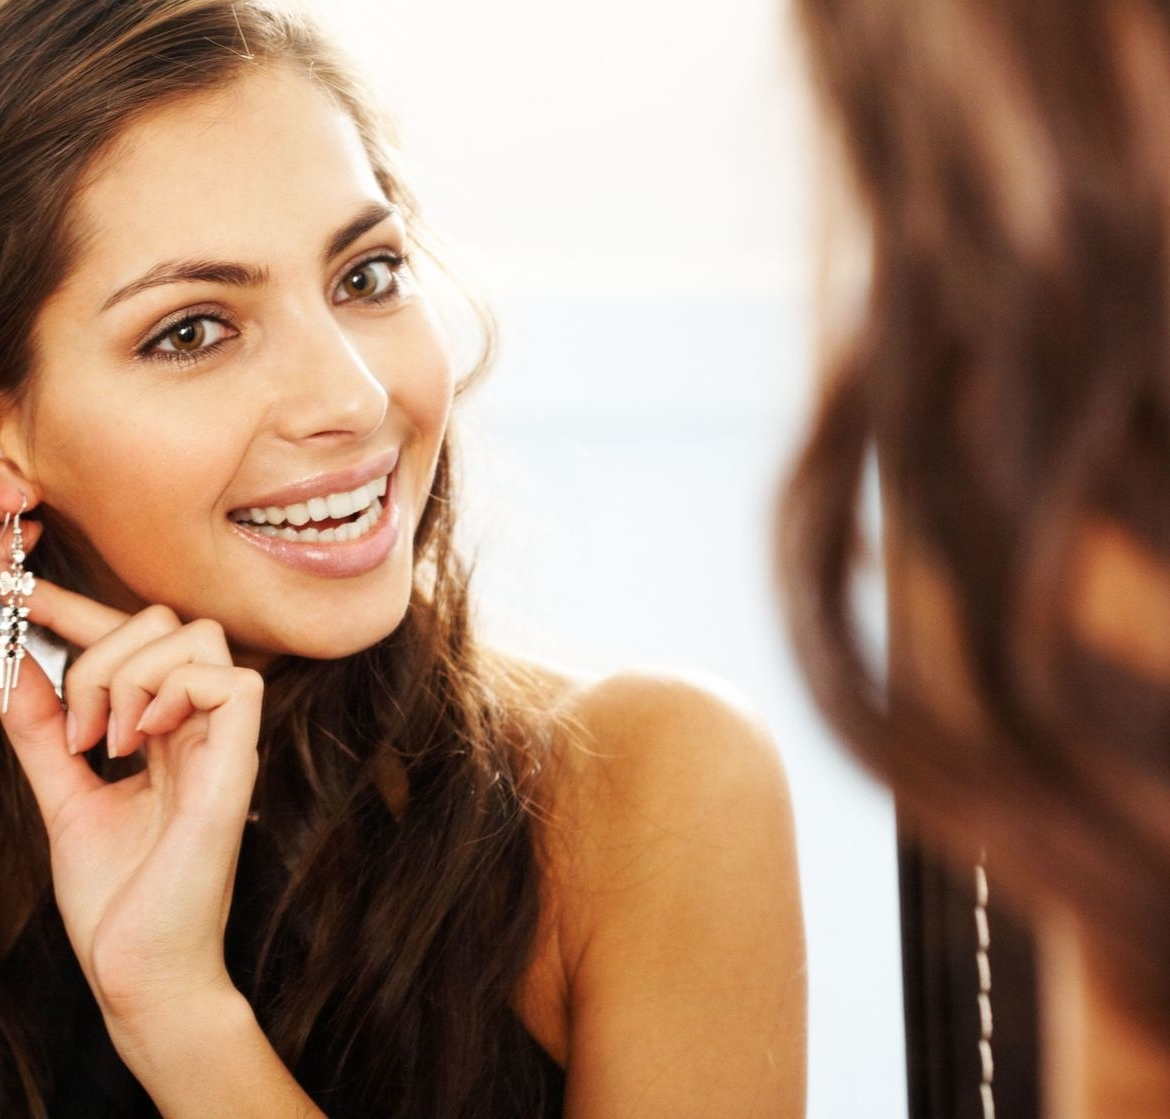 image of pretty female looking in mirror and putting on mis-matched earrings